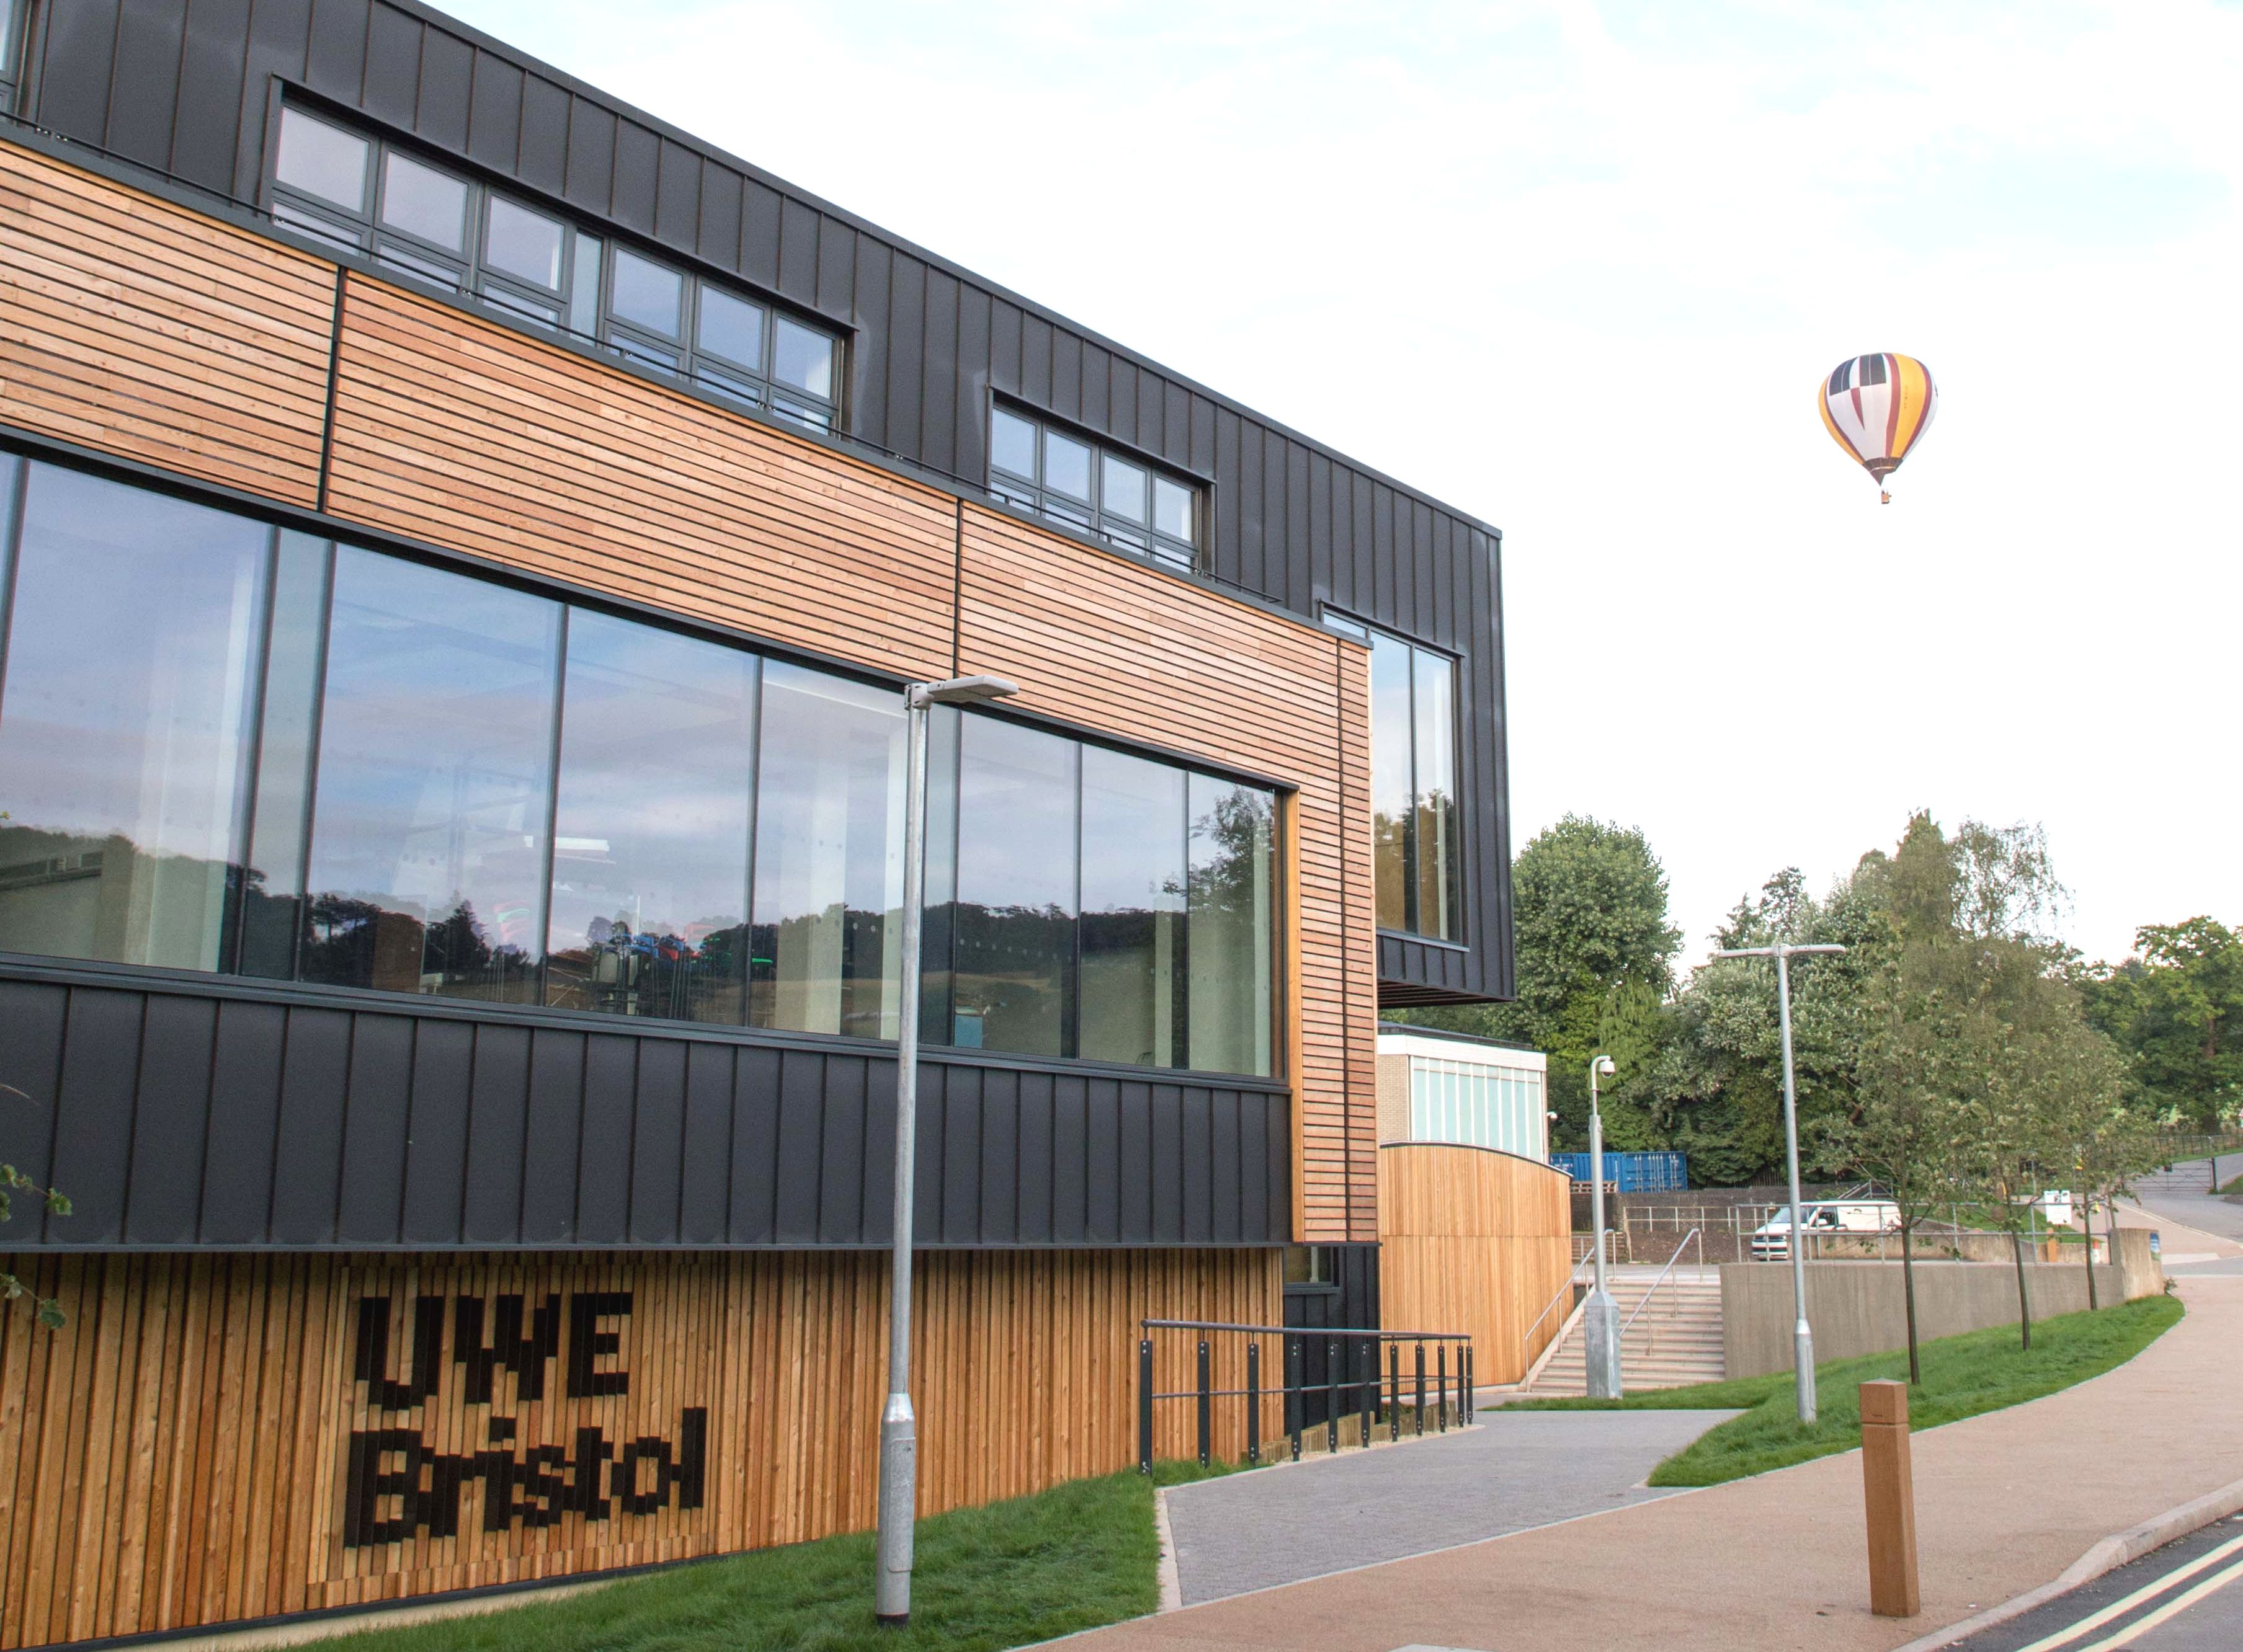 Digital Media Bower Ashton Campus, balloons.jpg